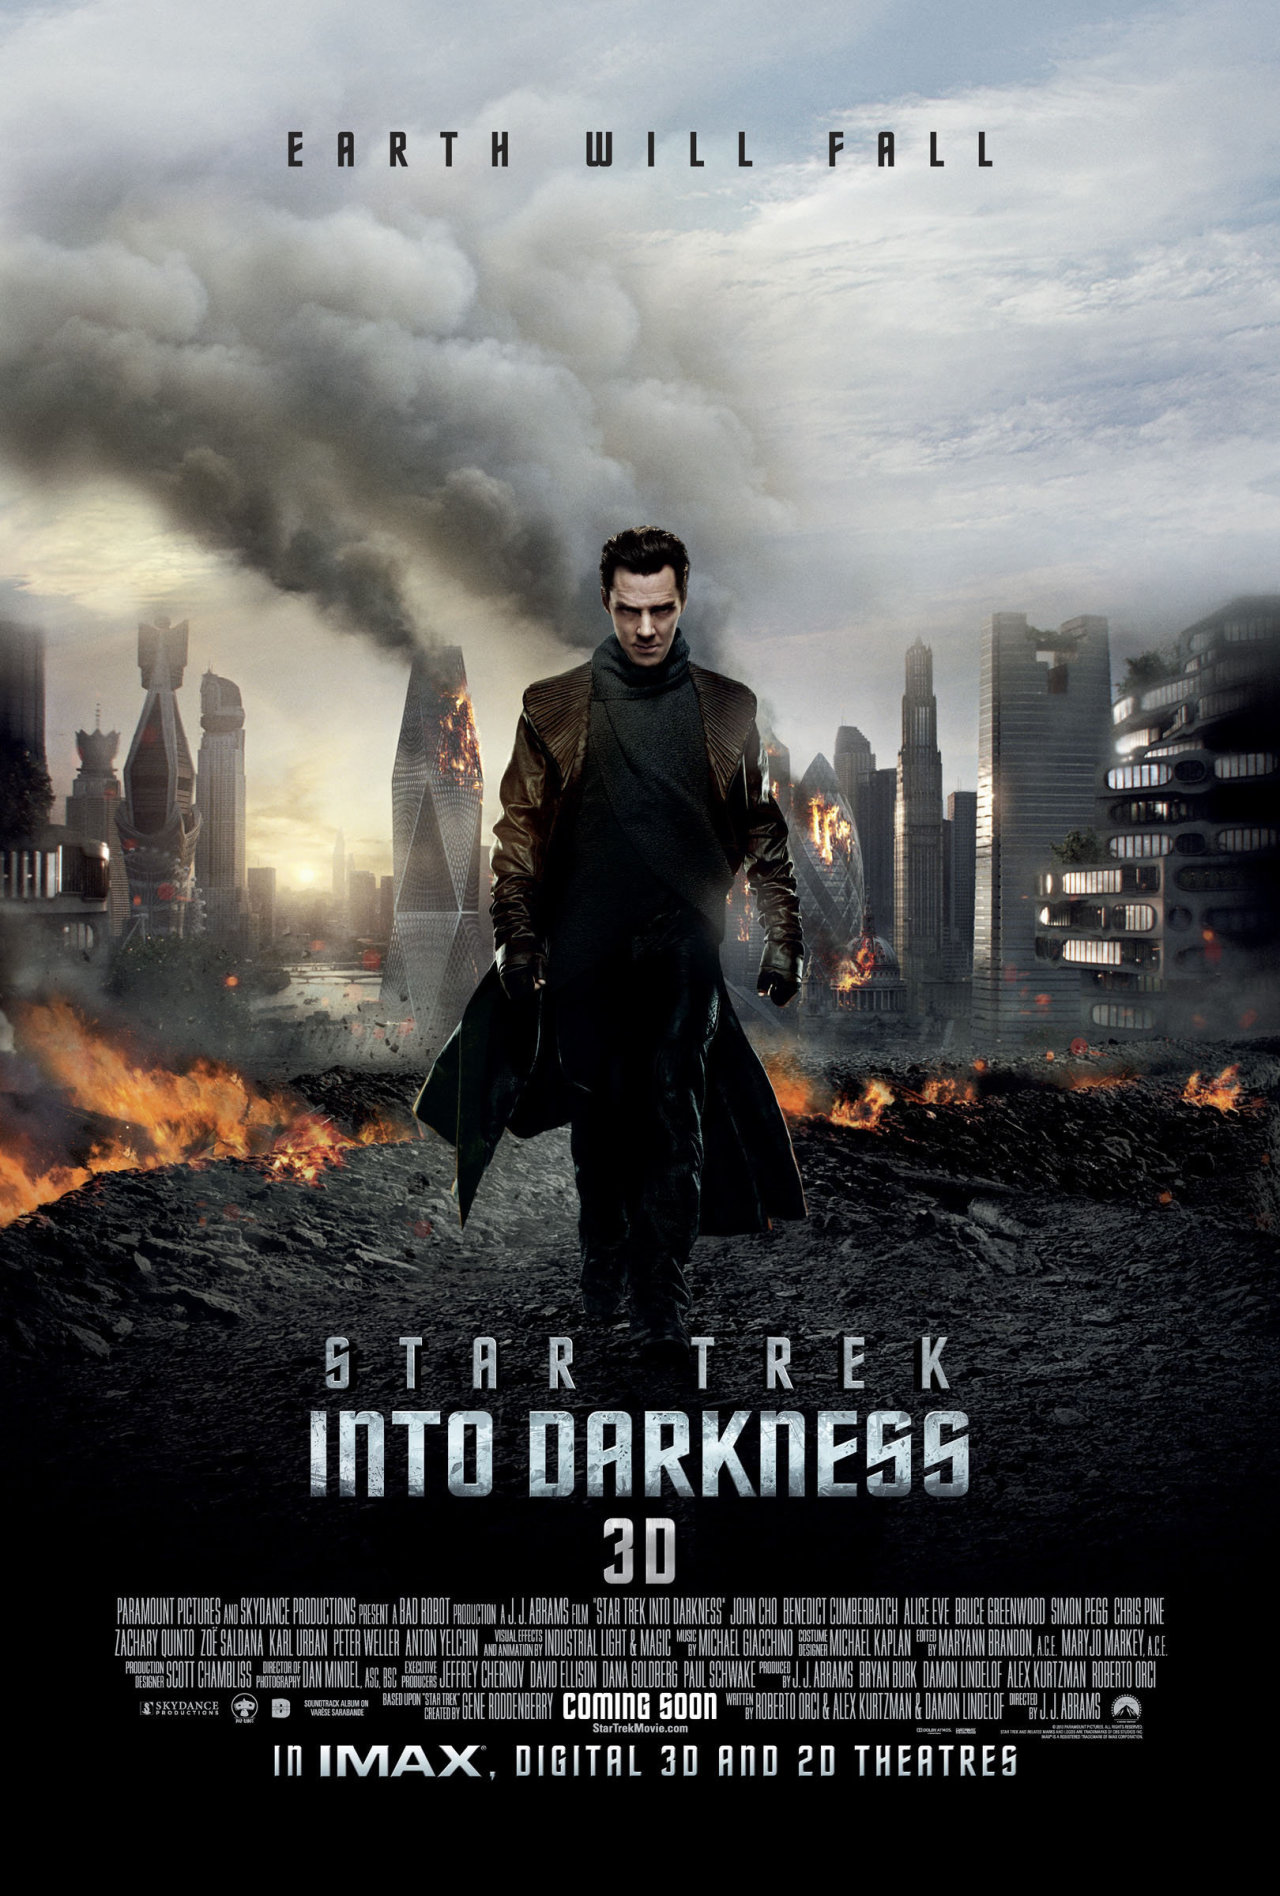 Star Trek Into Darkness (2013)      After the crew of the Enterprise find an unstoppable force of terror from within their own organization, Captain Kirk leads a manhunt to a war-zone world to capture a one man weapon of mass destruction.      Just watched this and it is simply AWESOME!!!  I wasn't a Trekkie before, but I think I may be one now ;-) Benedict Cumberbatch is simply amazing, and let's be honest, he does justice to every role - such a talented actor. When they introduce him in the film,  the camera zoomed  on him and he looked very DASHING. A bit of weight gain really fills his face and makes him look incredibly sexy but…I digress - Cumberbatch is pretty evil in this film but he did an excellent job as  did everyone else. go watch it. It's highly entertaining! To see the YouTube trailer, just click on the poster above.